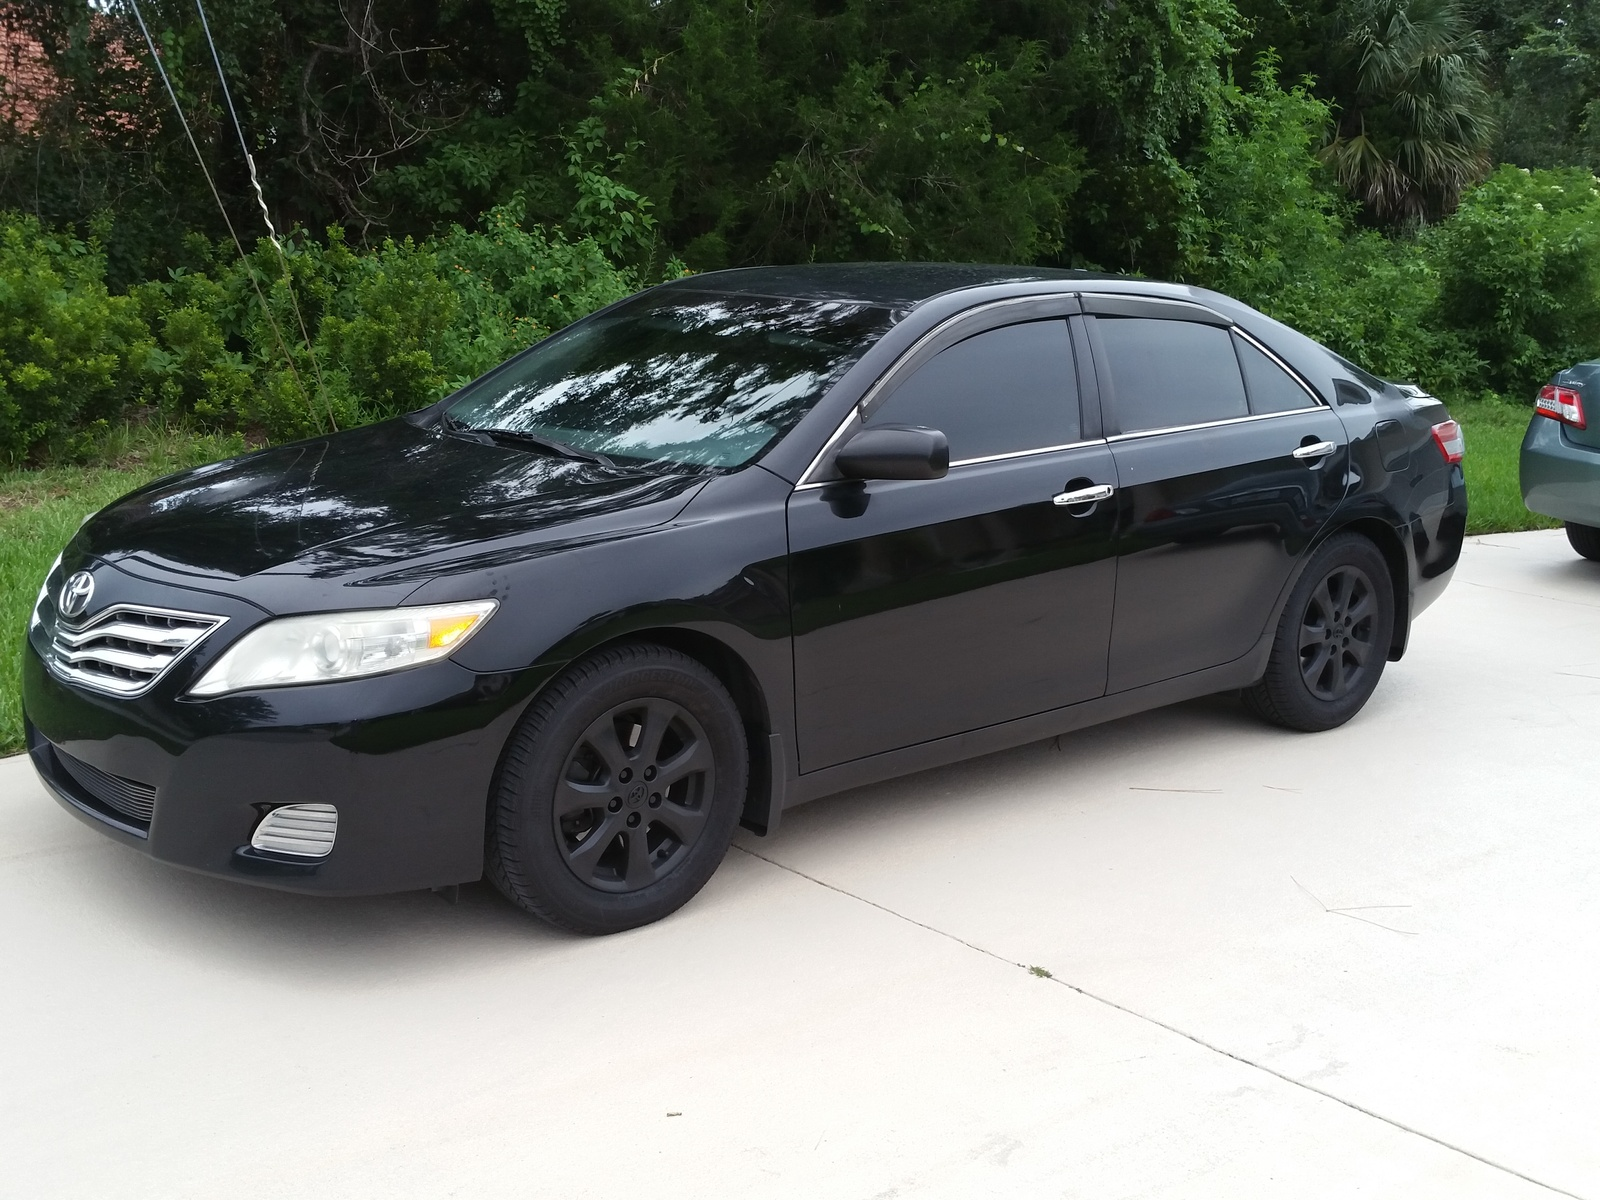 toyota camry questions do my 2011 camry le have a jbl stereo system carg. Black Bedroom Furniture Sets. Home Design Ideas